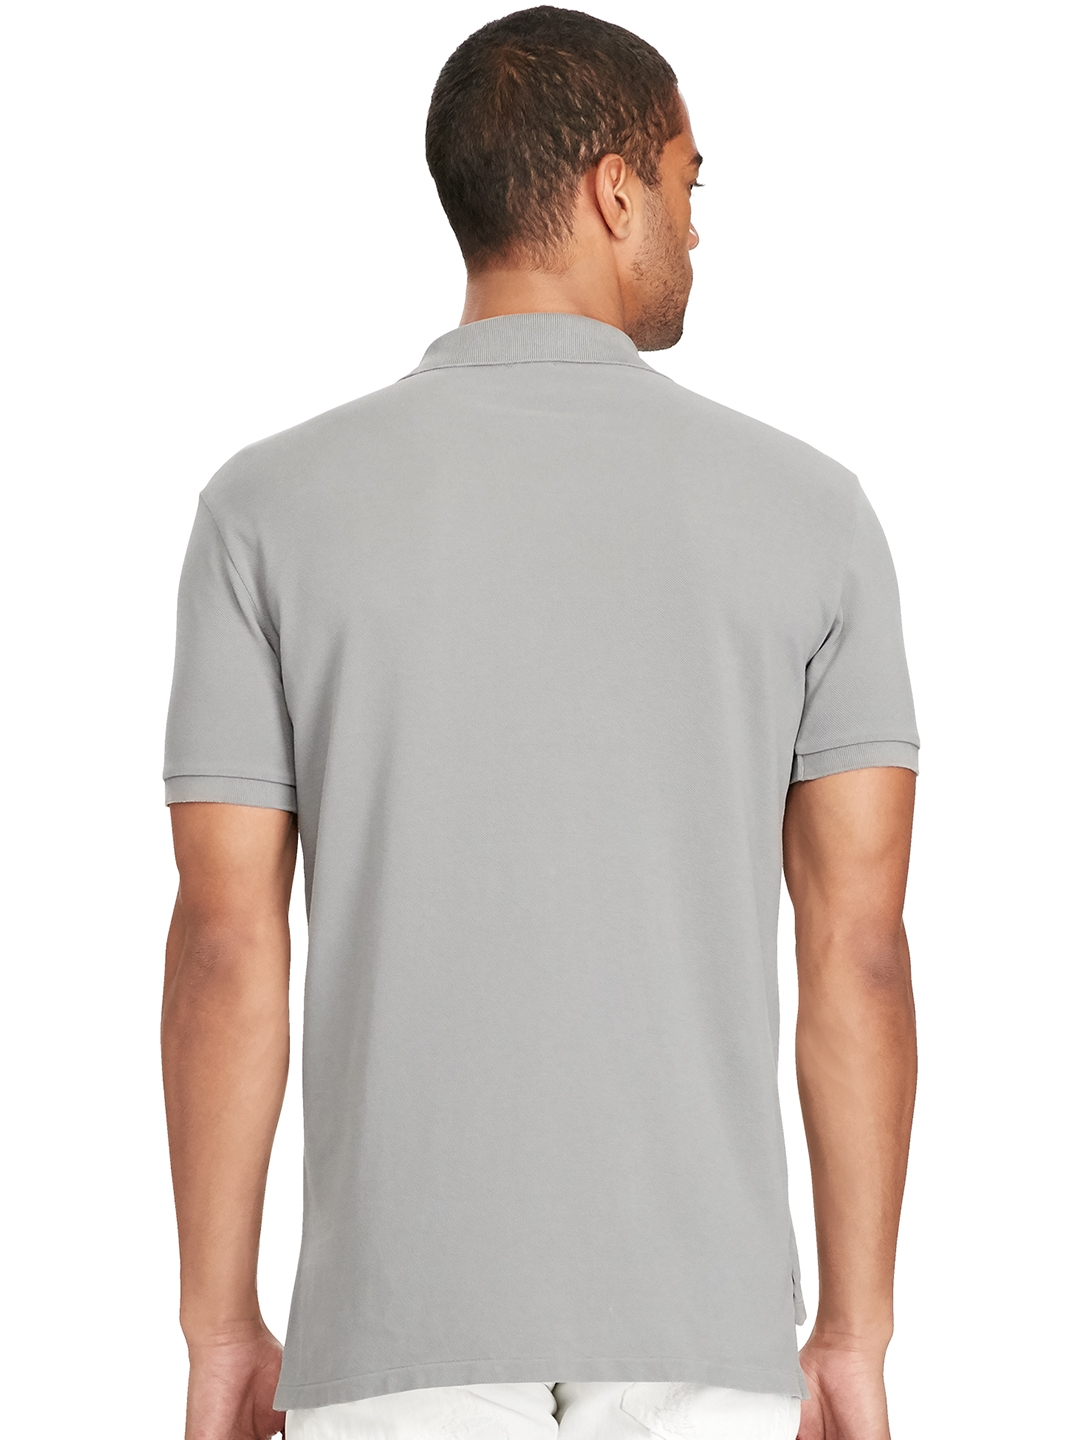 a569b347a0f Buy Polo Ralph Lauren Custom Fit Weathered Mesh Polo - Tshirts for ...